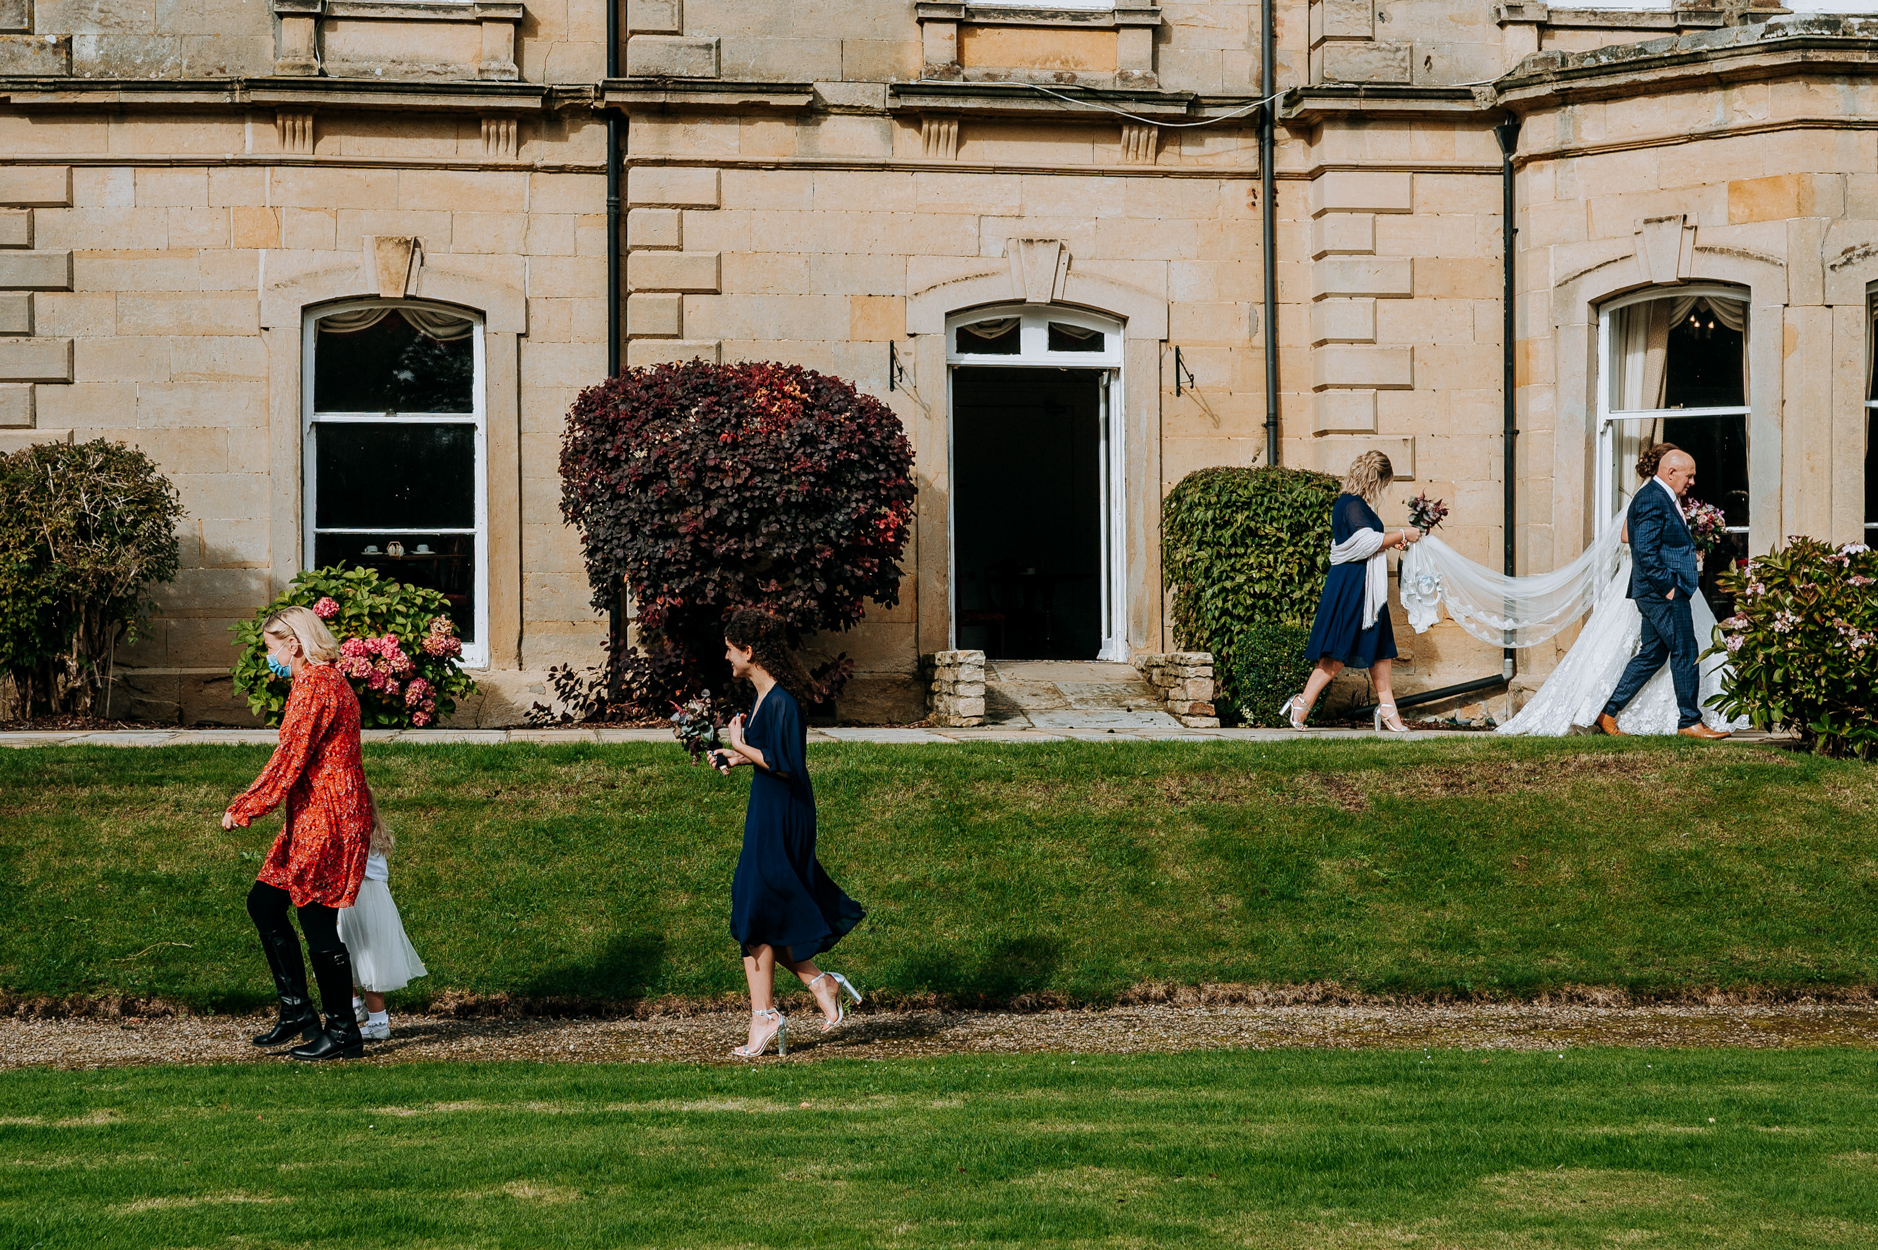 Hackness Grange Wedding Photography | The bridal party walks to the outdoor ceremony